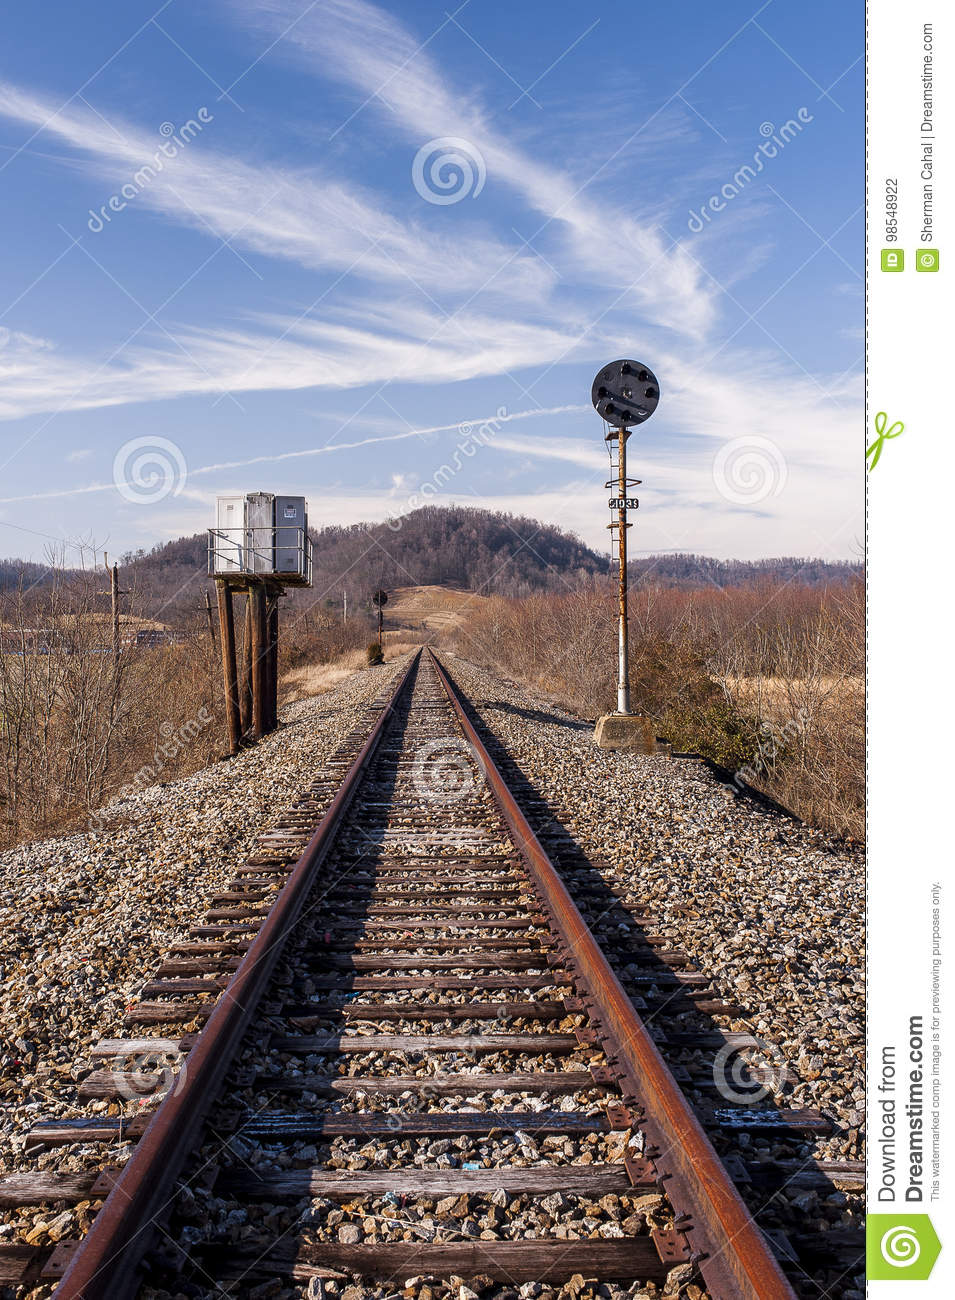 Abandoned Railroad Signal.